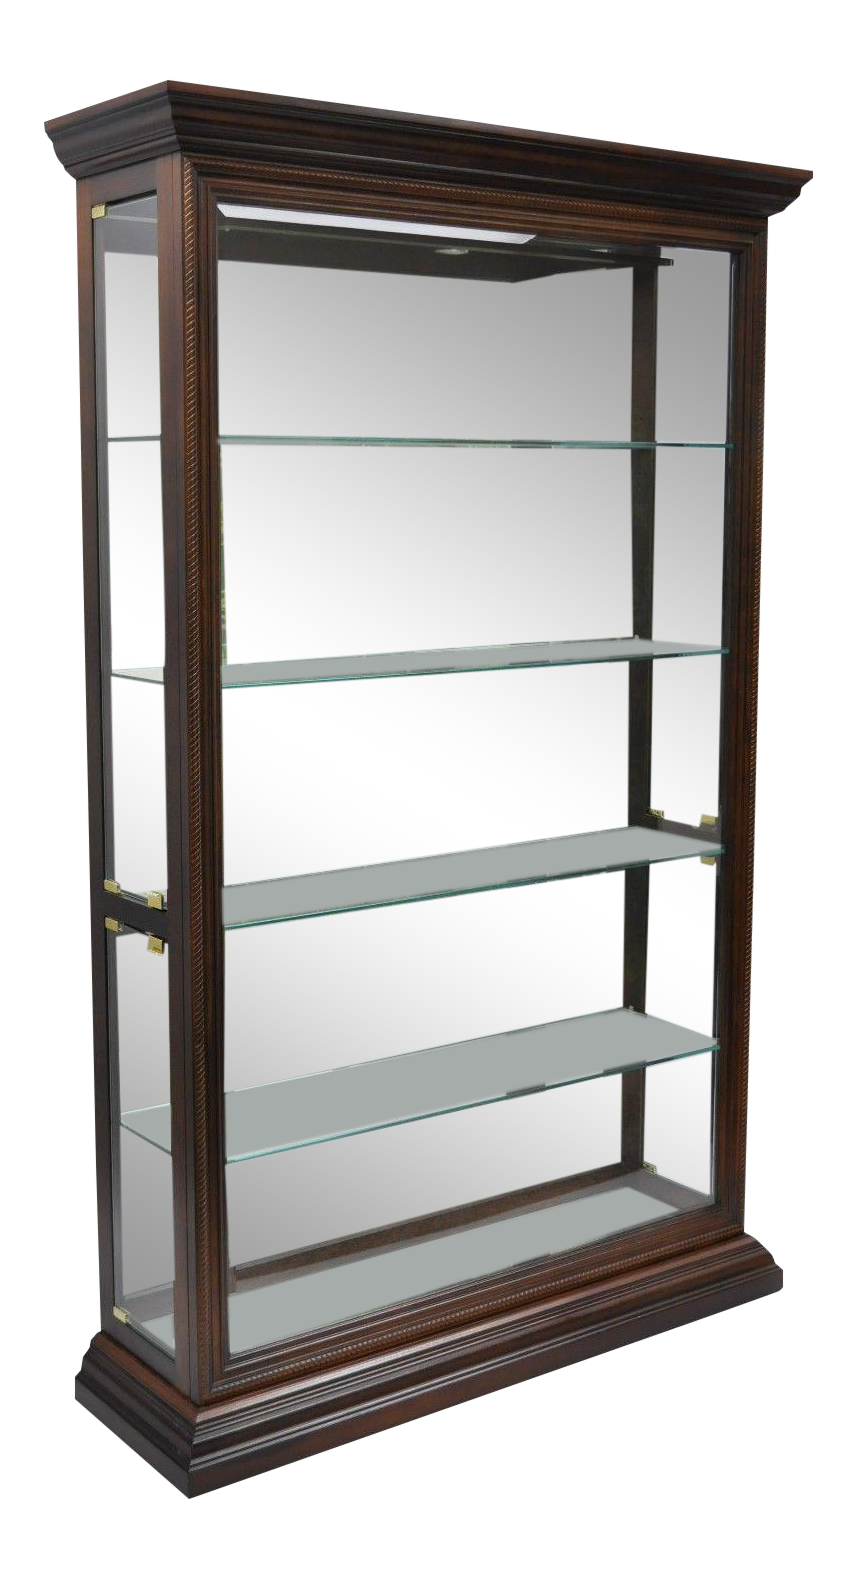 Fantastic Large Pulaski Lighted Curio Display Cabinet | Chairish OL22